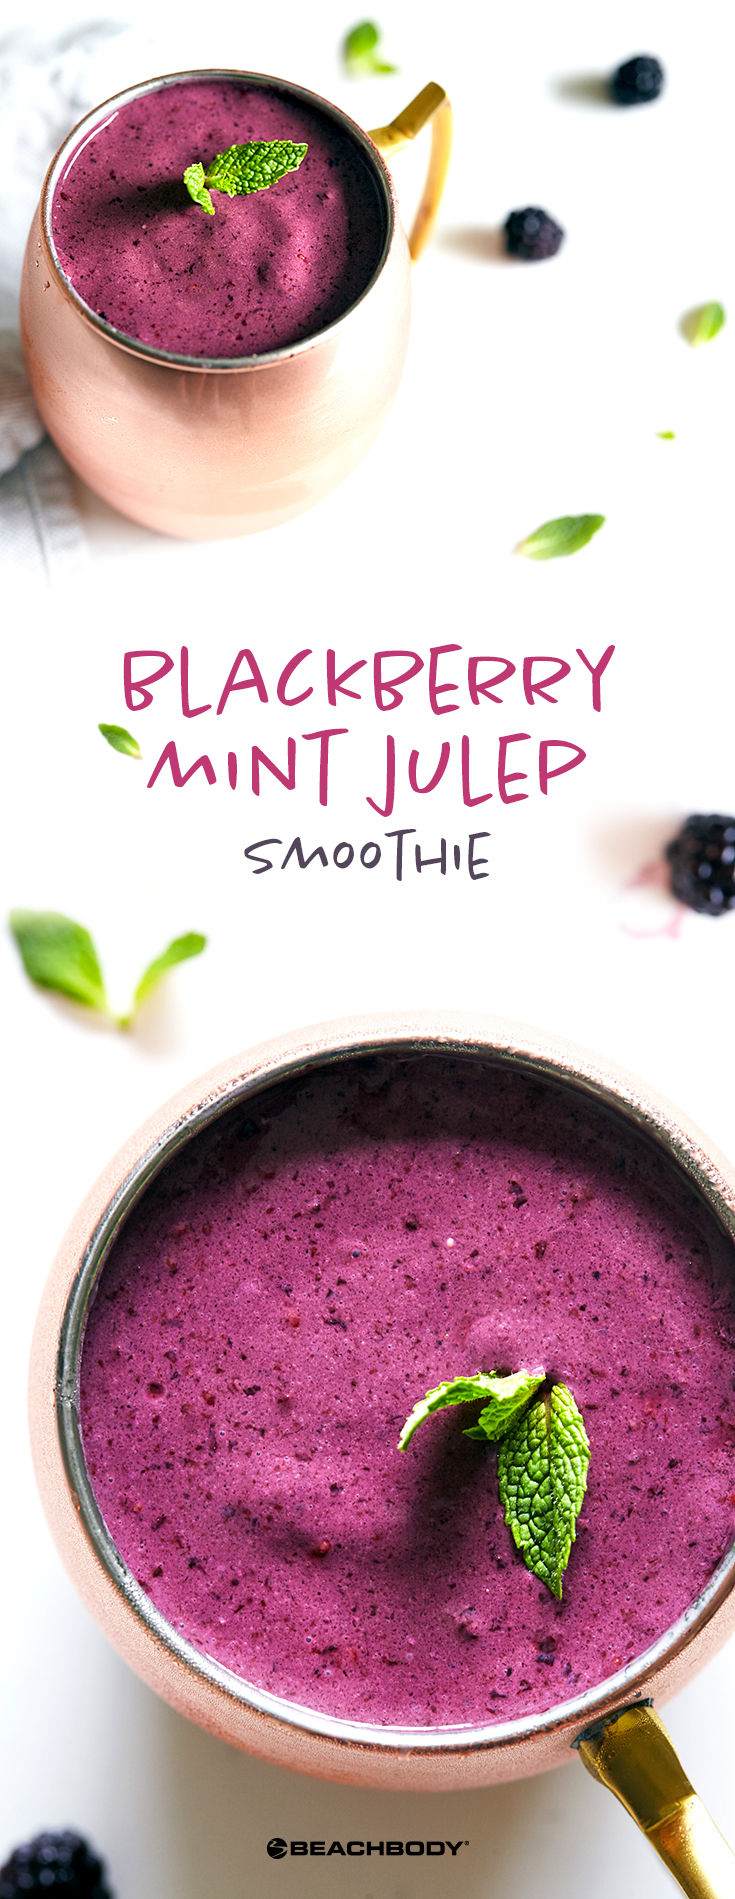 Blackberry Mint Julep Smoothie